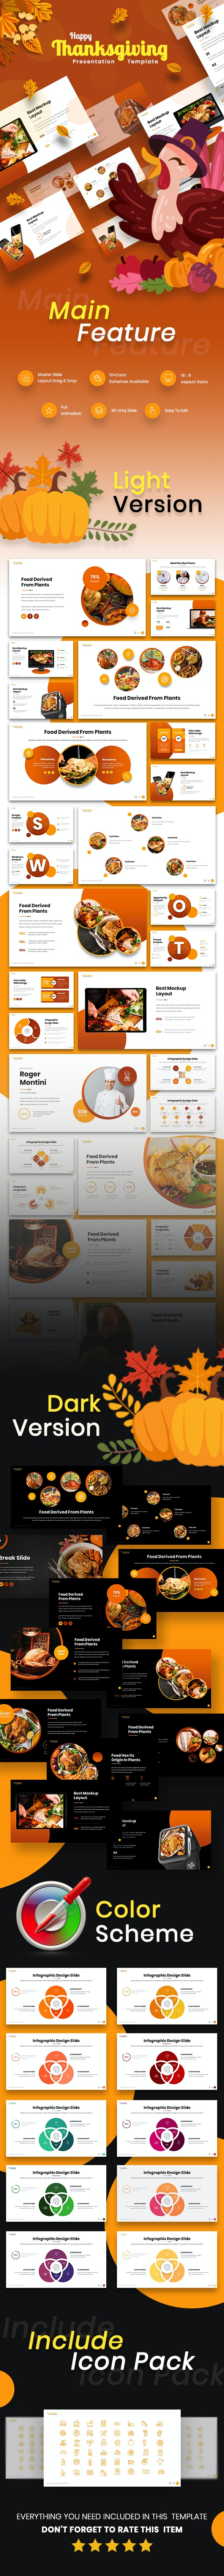 Happy Thanksgiving Presentation Template - Creative PowerPoint Templates